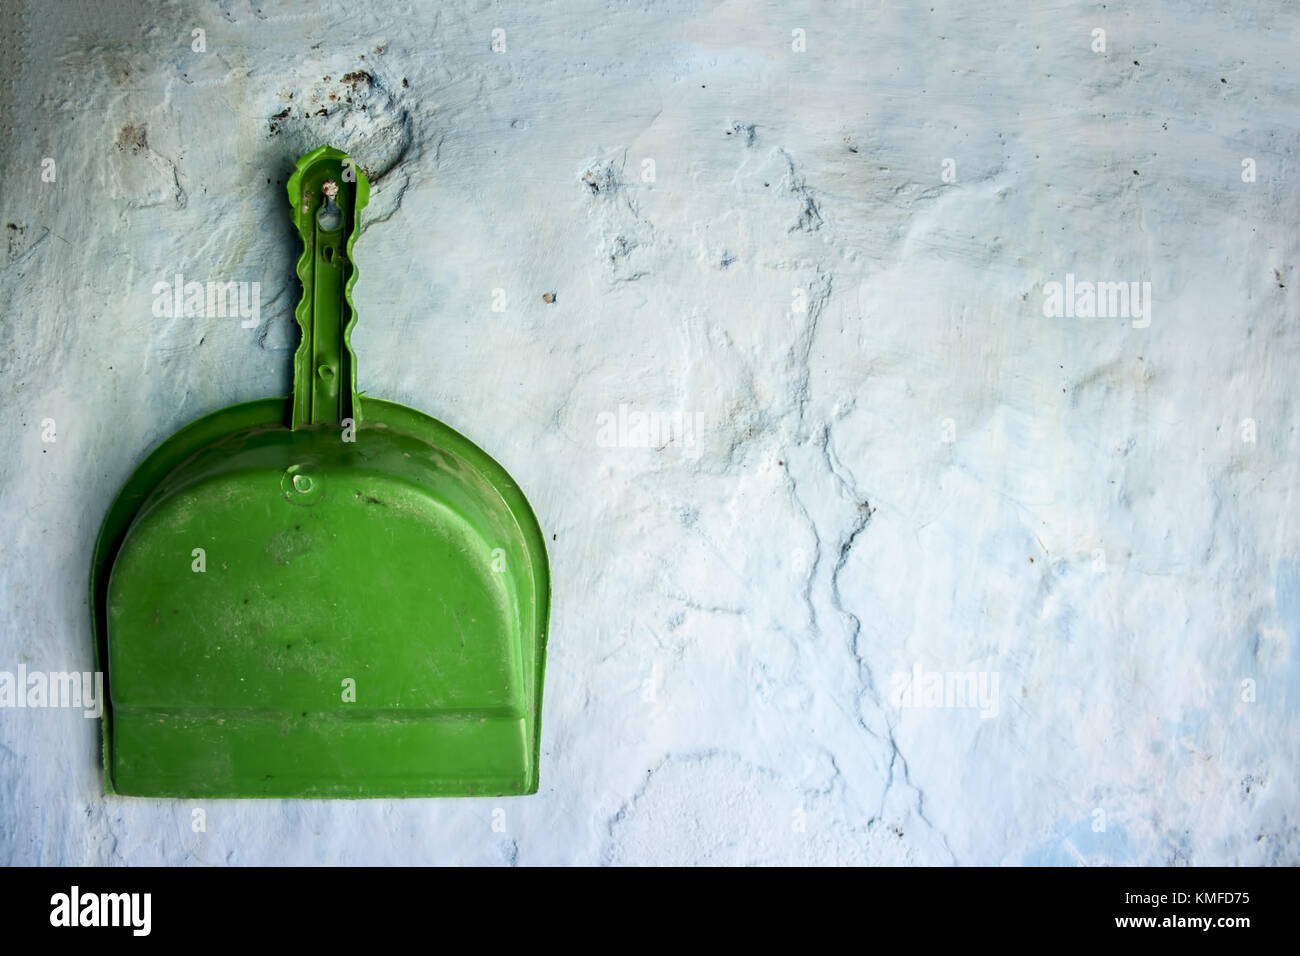 Green colored Dustpan hanging on the wall.Concept of cleanliness and neatness. - Stock Image